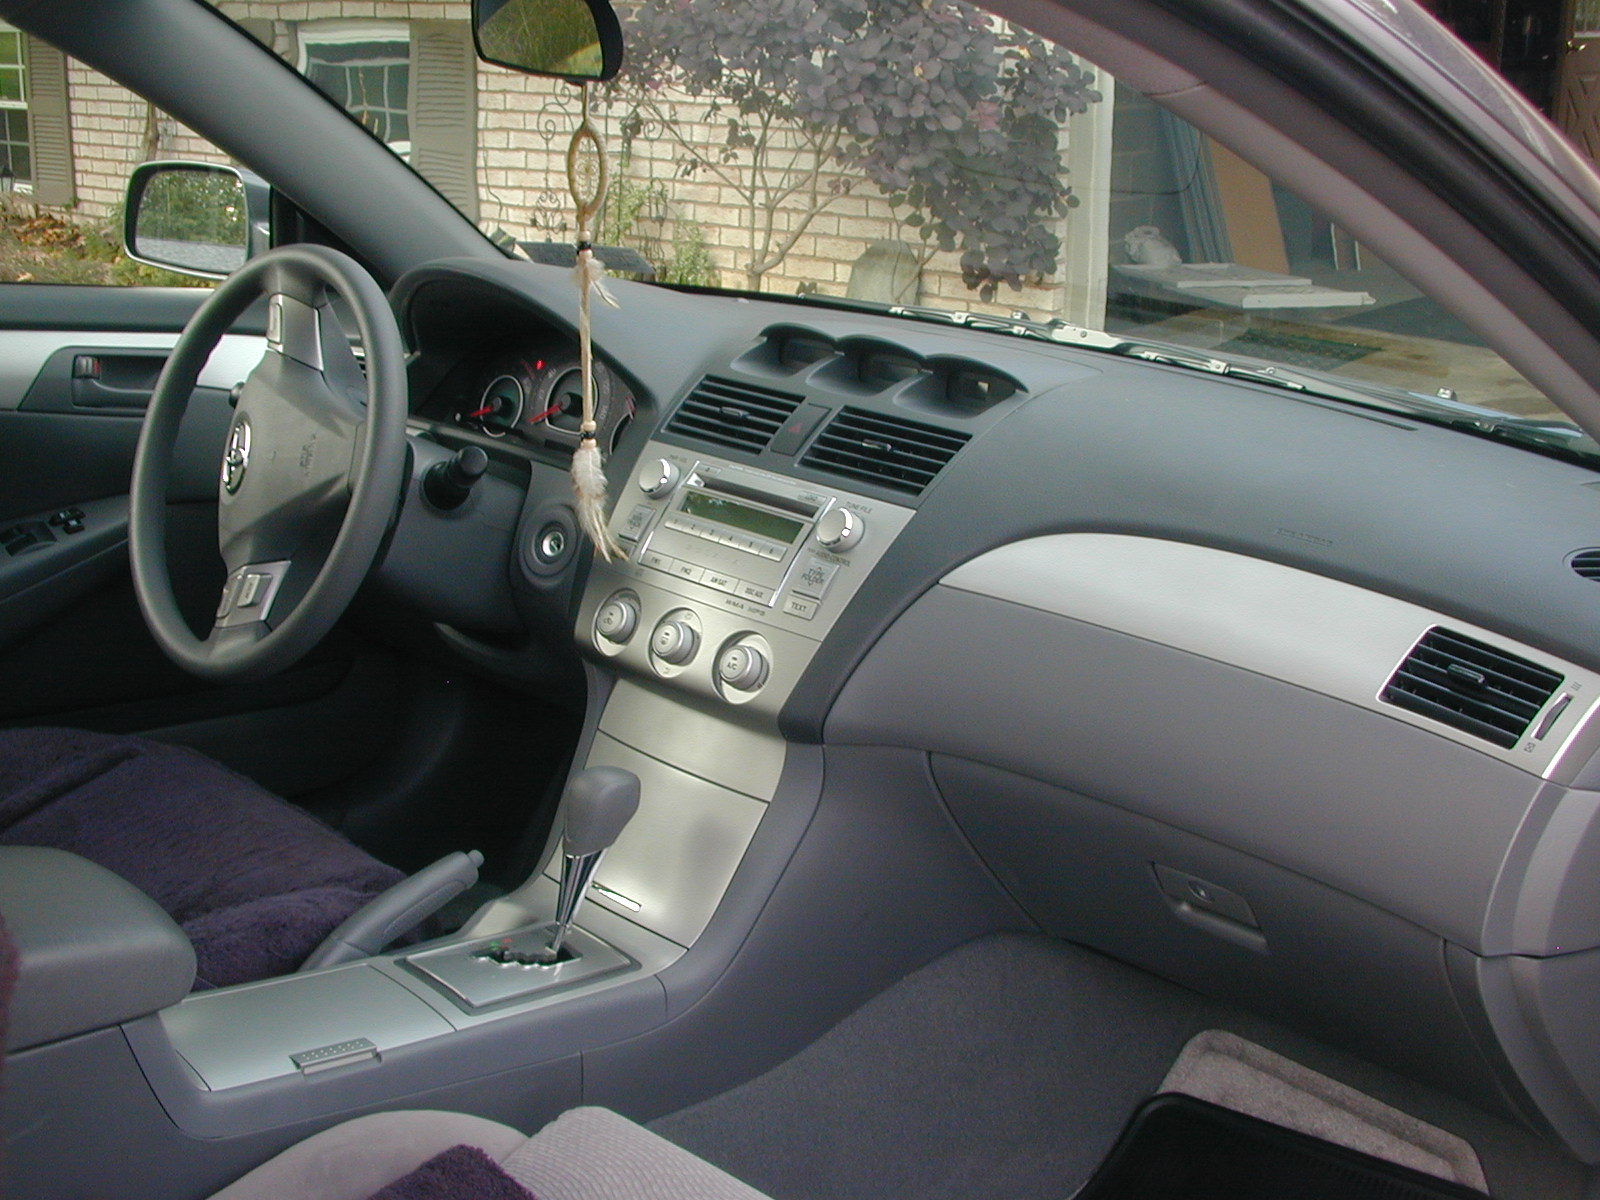 2008 toyota camry solara interior pictures cargurus. Black Bedroom Furniture Sets. Home Design Ideas